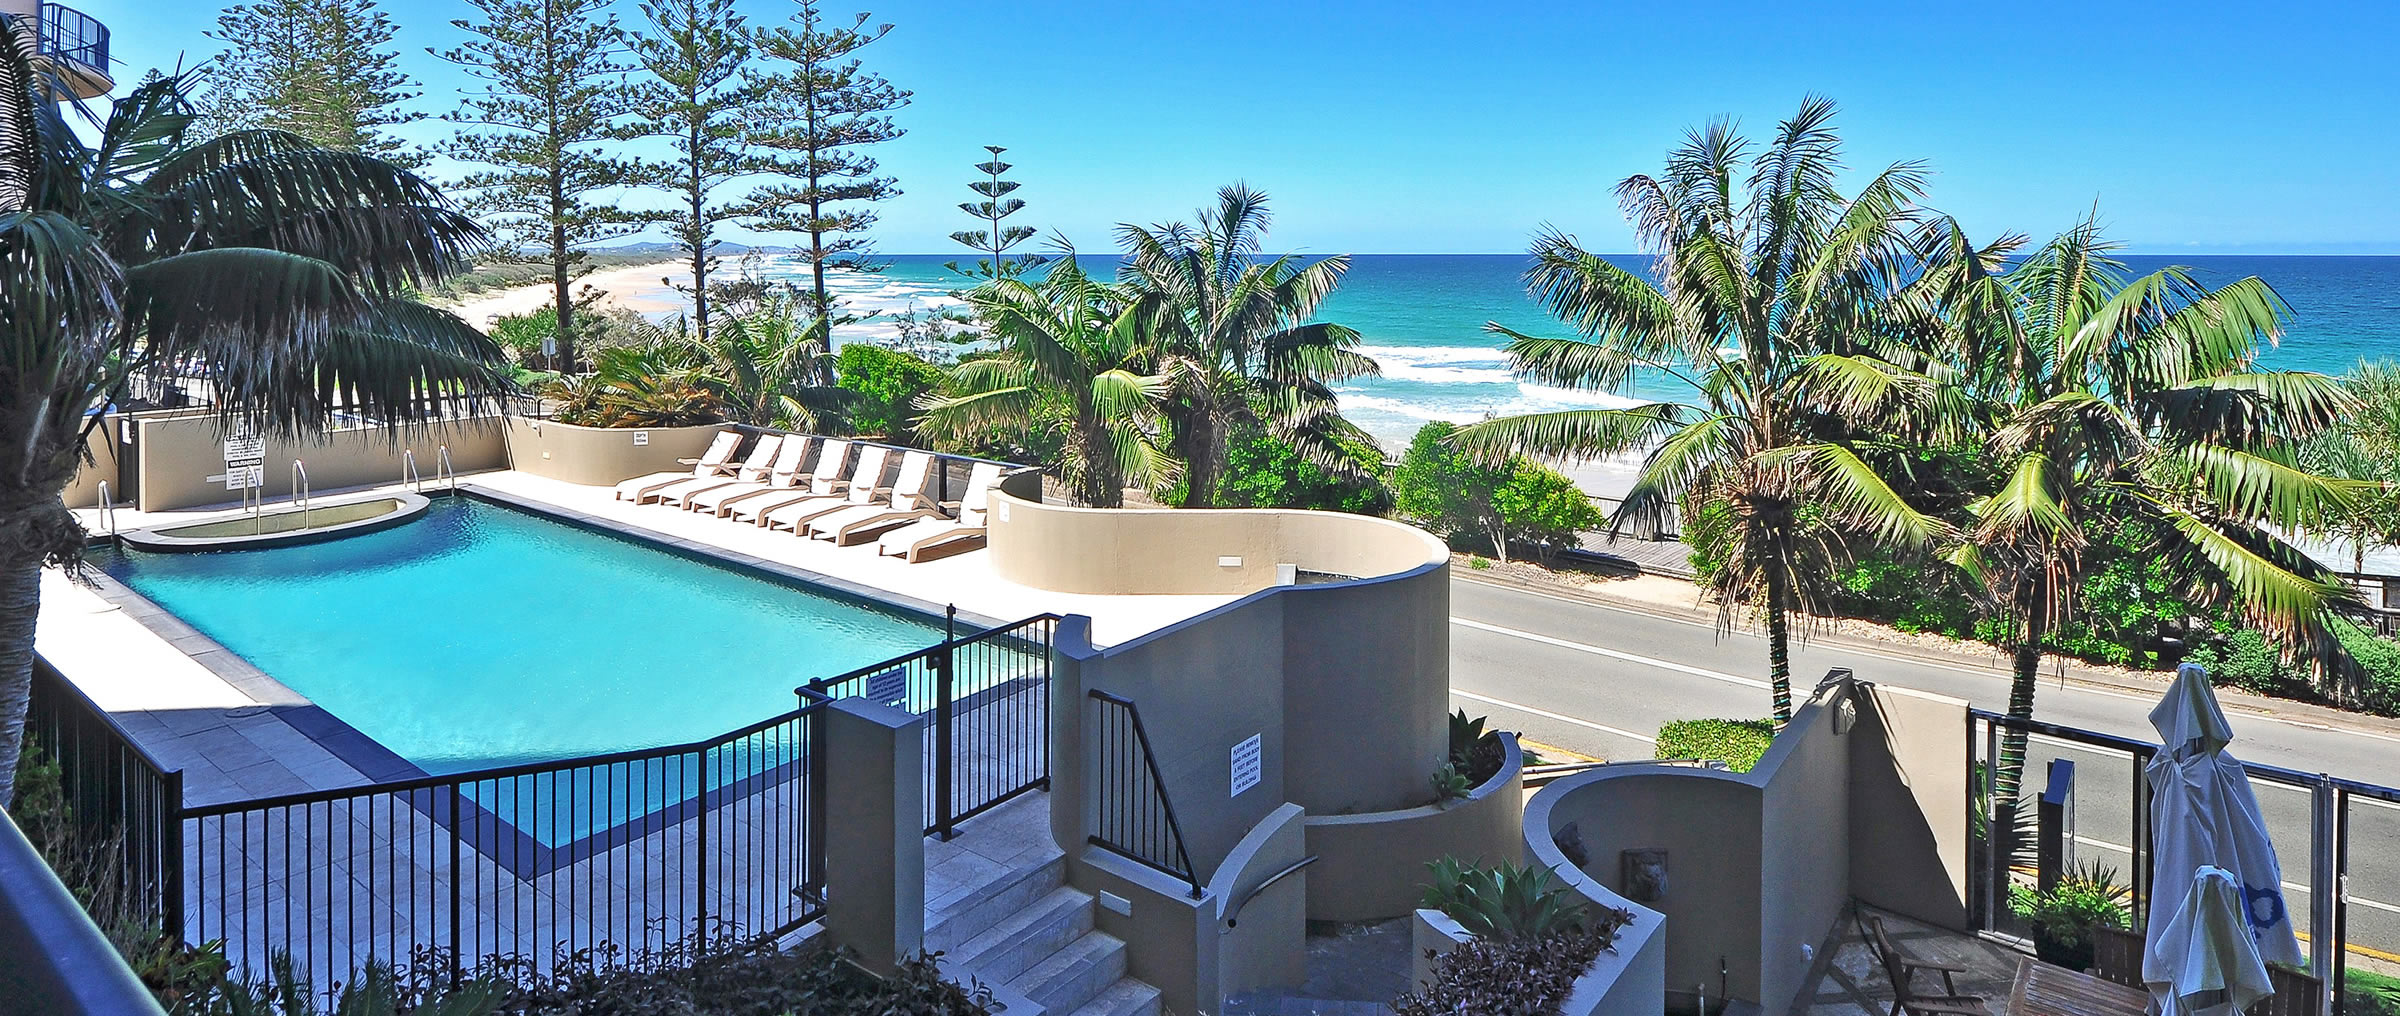 Coolum Beach holiday apartments on the Sunshine Coast